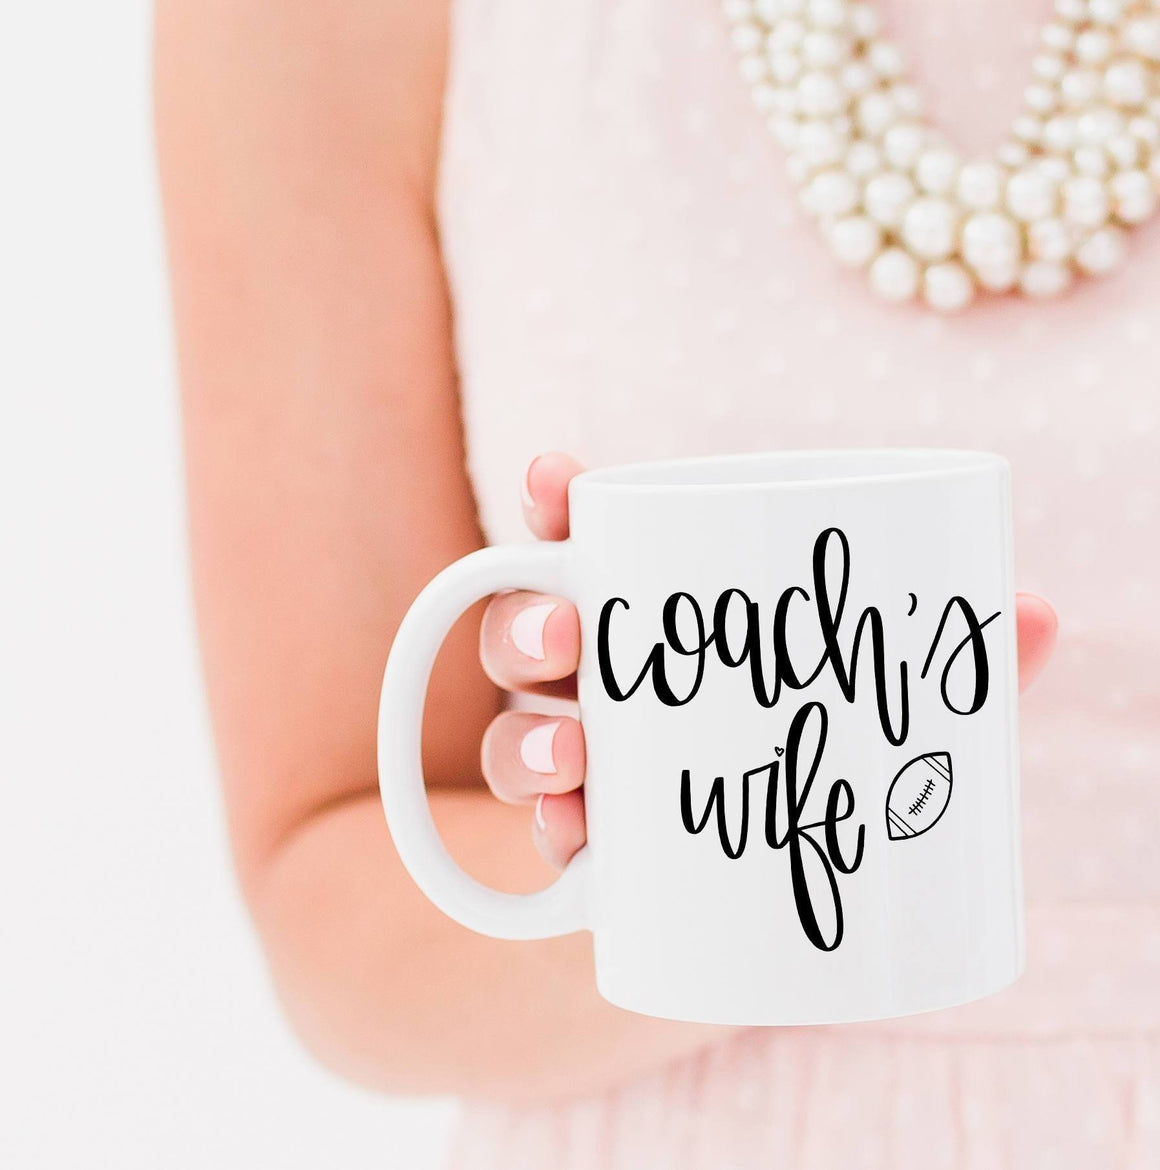 Full Heart Co's Hand-Lettered Coach's Wife mug. The perfect gift for the coach's wife this football season. Buy it for yourself or a friend.